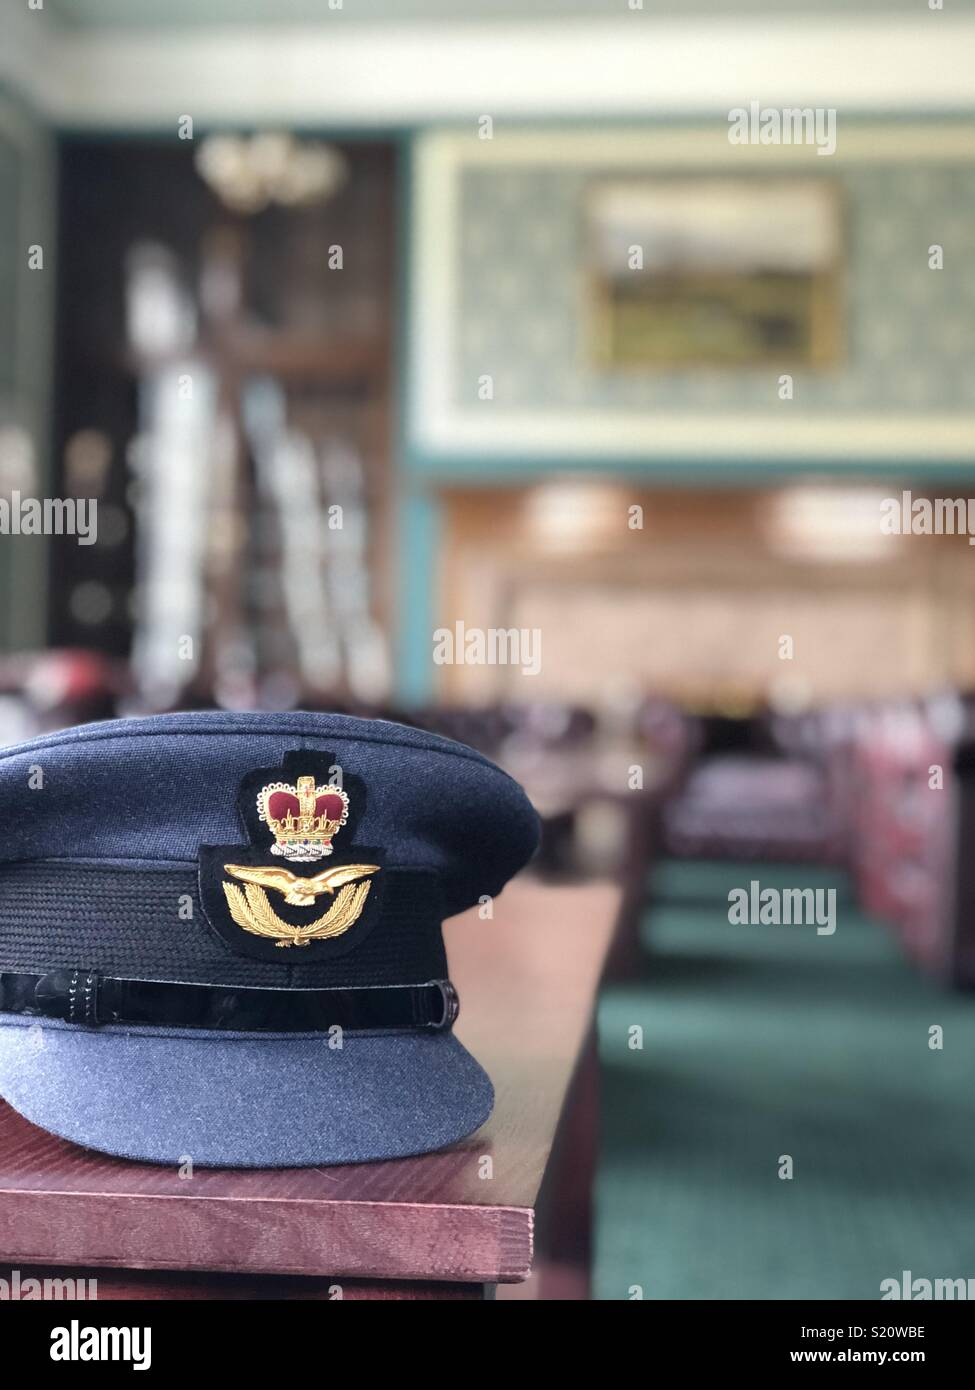 RAF. Officers cap in Officers Mess - Stock Image